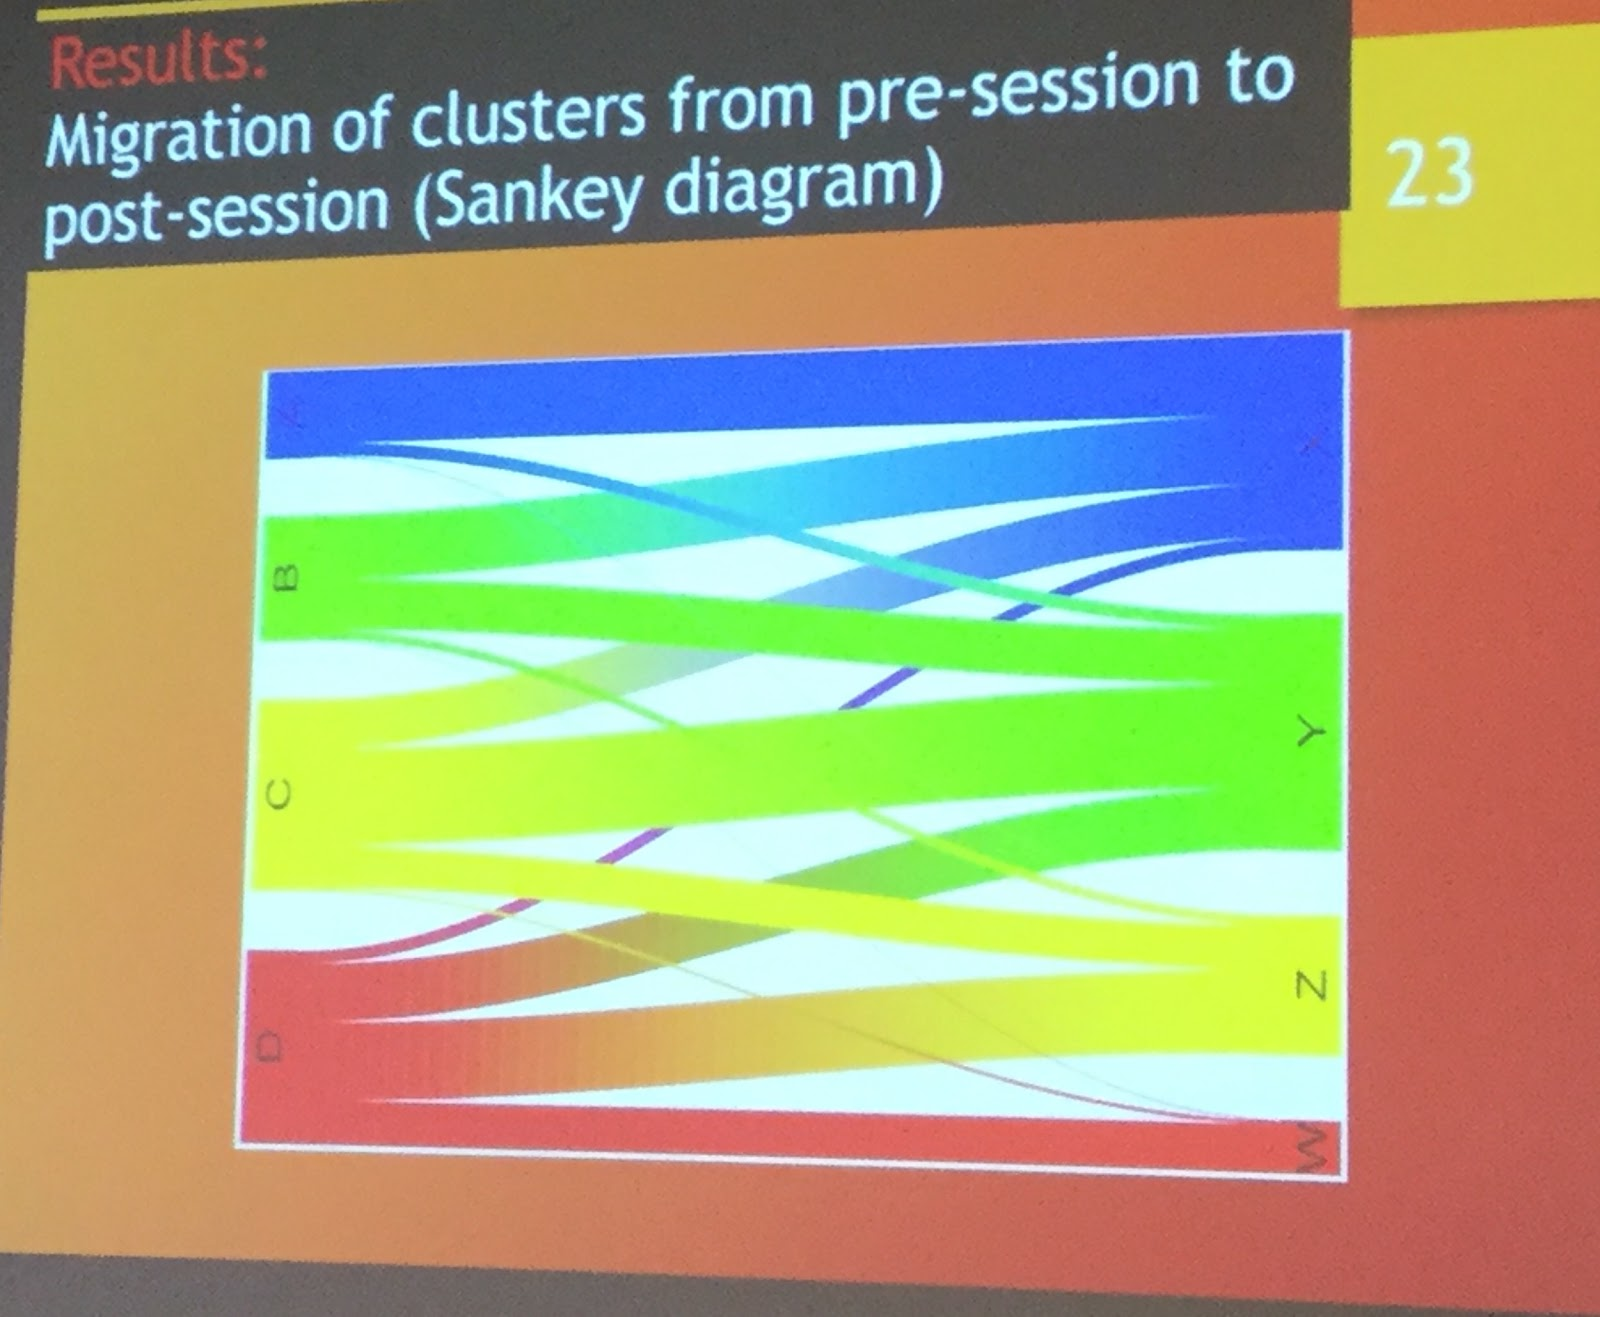 Information Literacy Weblog Migration Of Clusters From Pre Session Data Security Courses In Brief The Cluster Analysis Shows That Perceived Capabilities Students Improve After Training Course Lowest Confidence Was To Do With